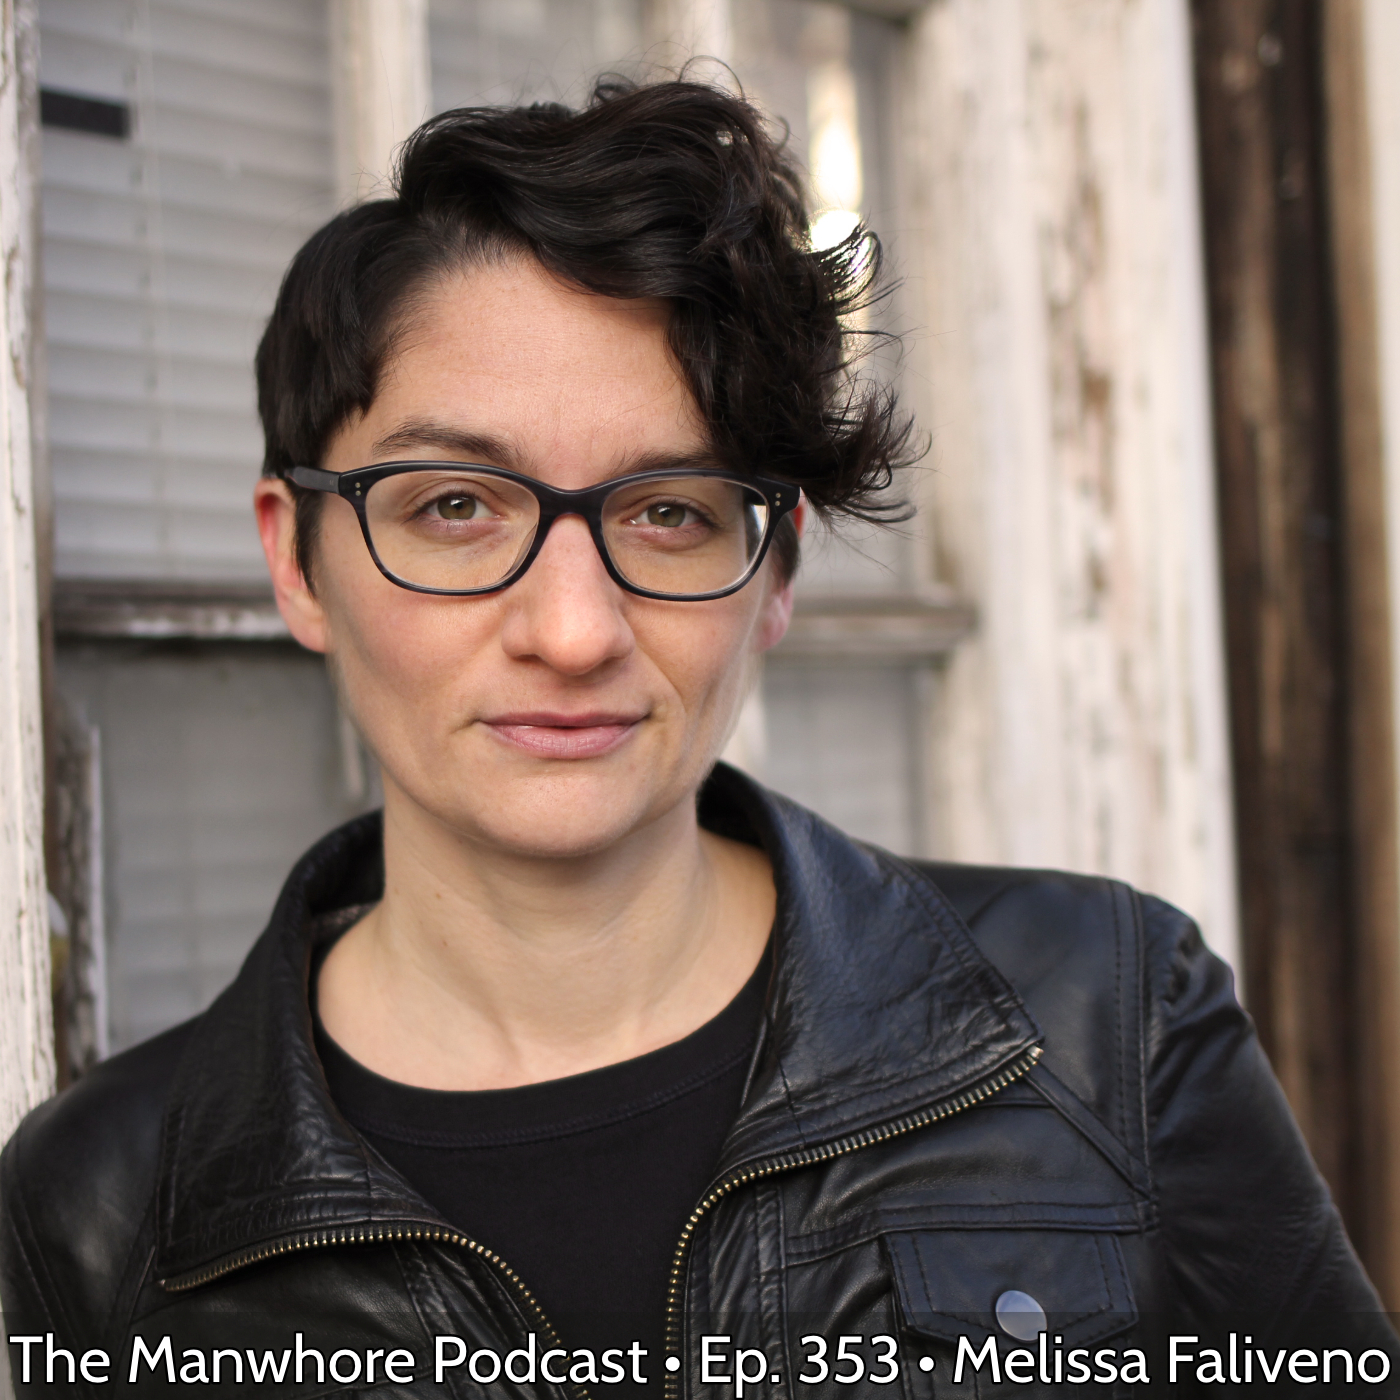 The Manwhore Podcast: A Sex-Positive Quest - Ep. 353: Queerness. Coming Out, and Trying on Gender with Melissa Faliveno // The EARN IT Act with Kaytlin Bailey